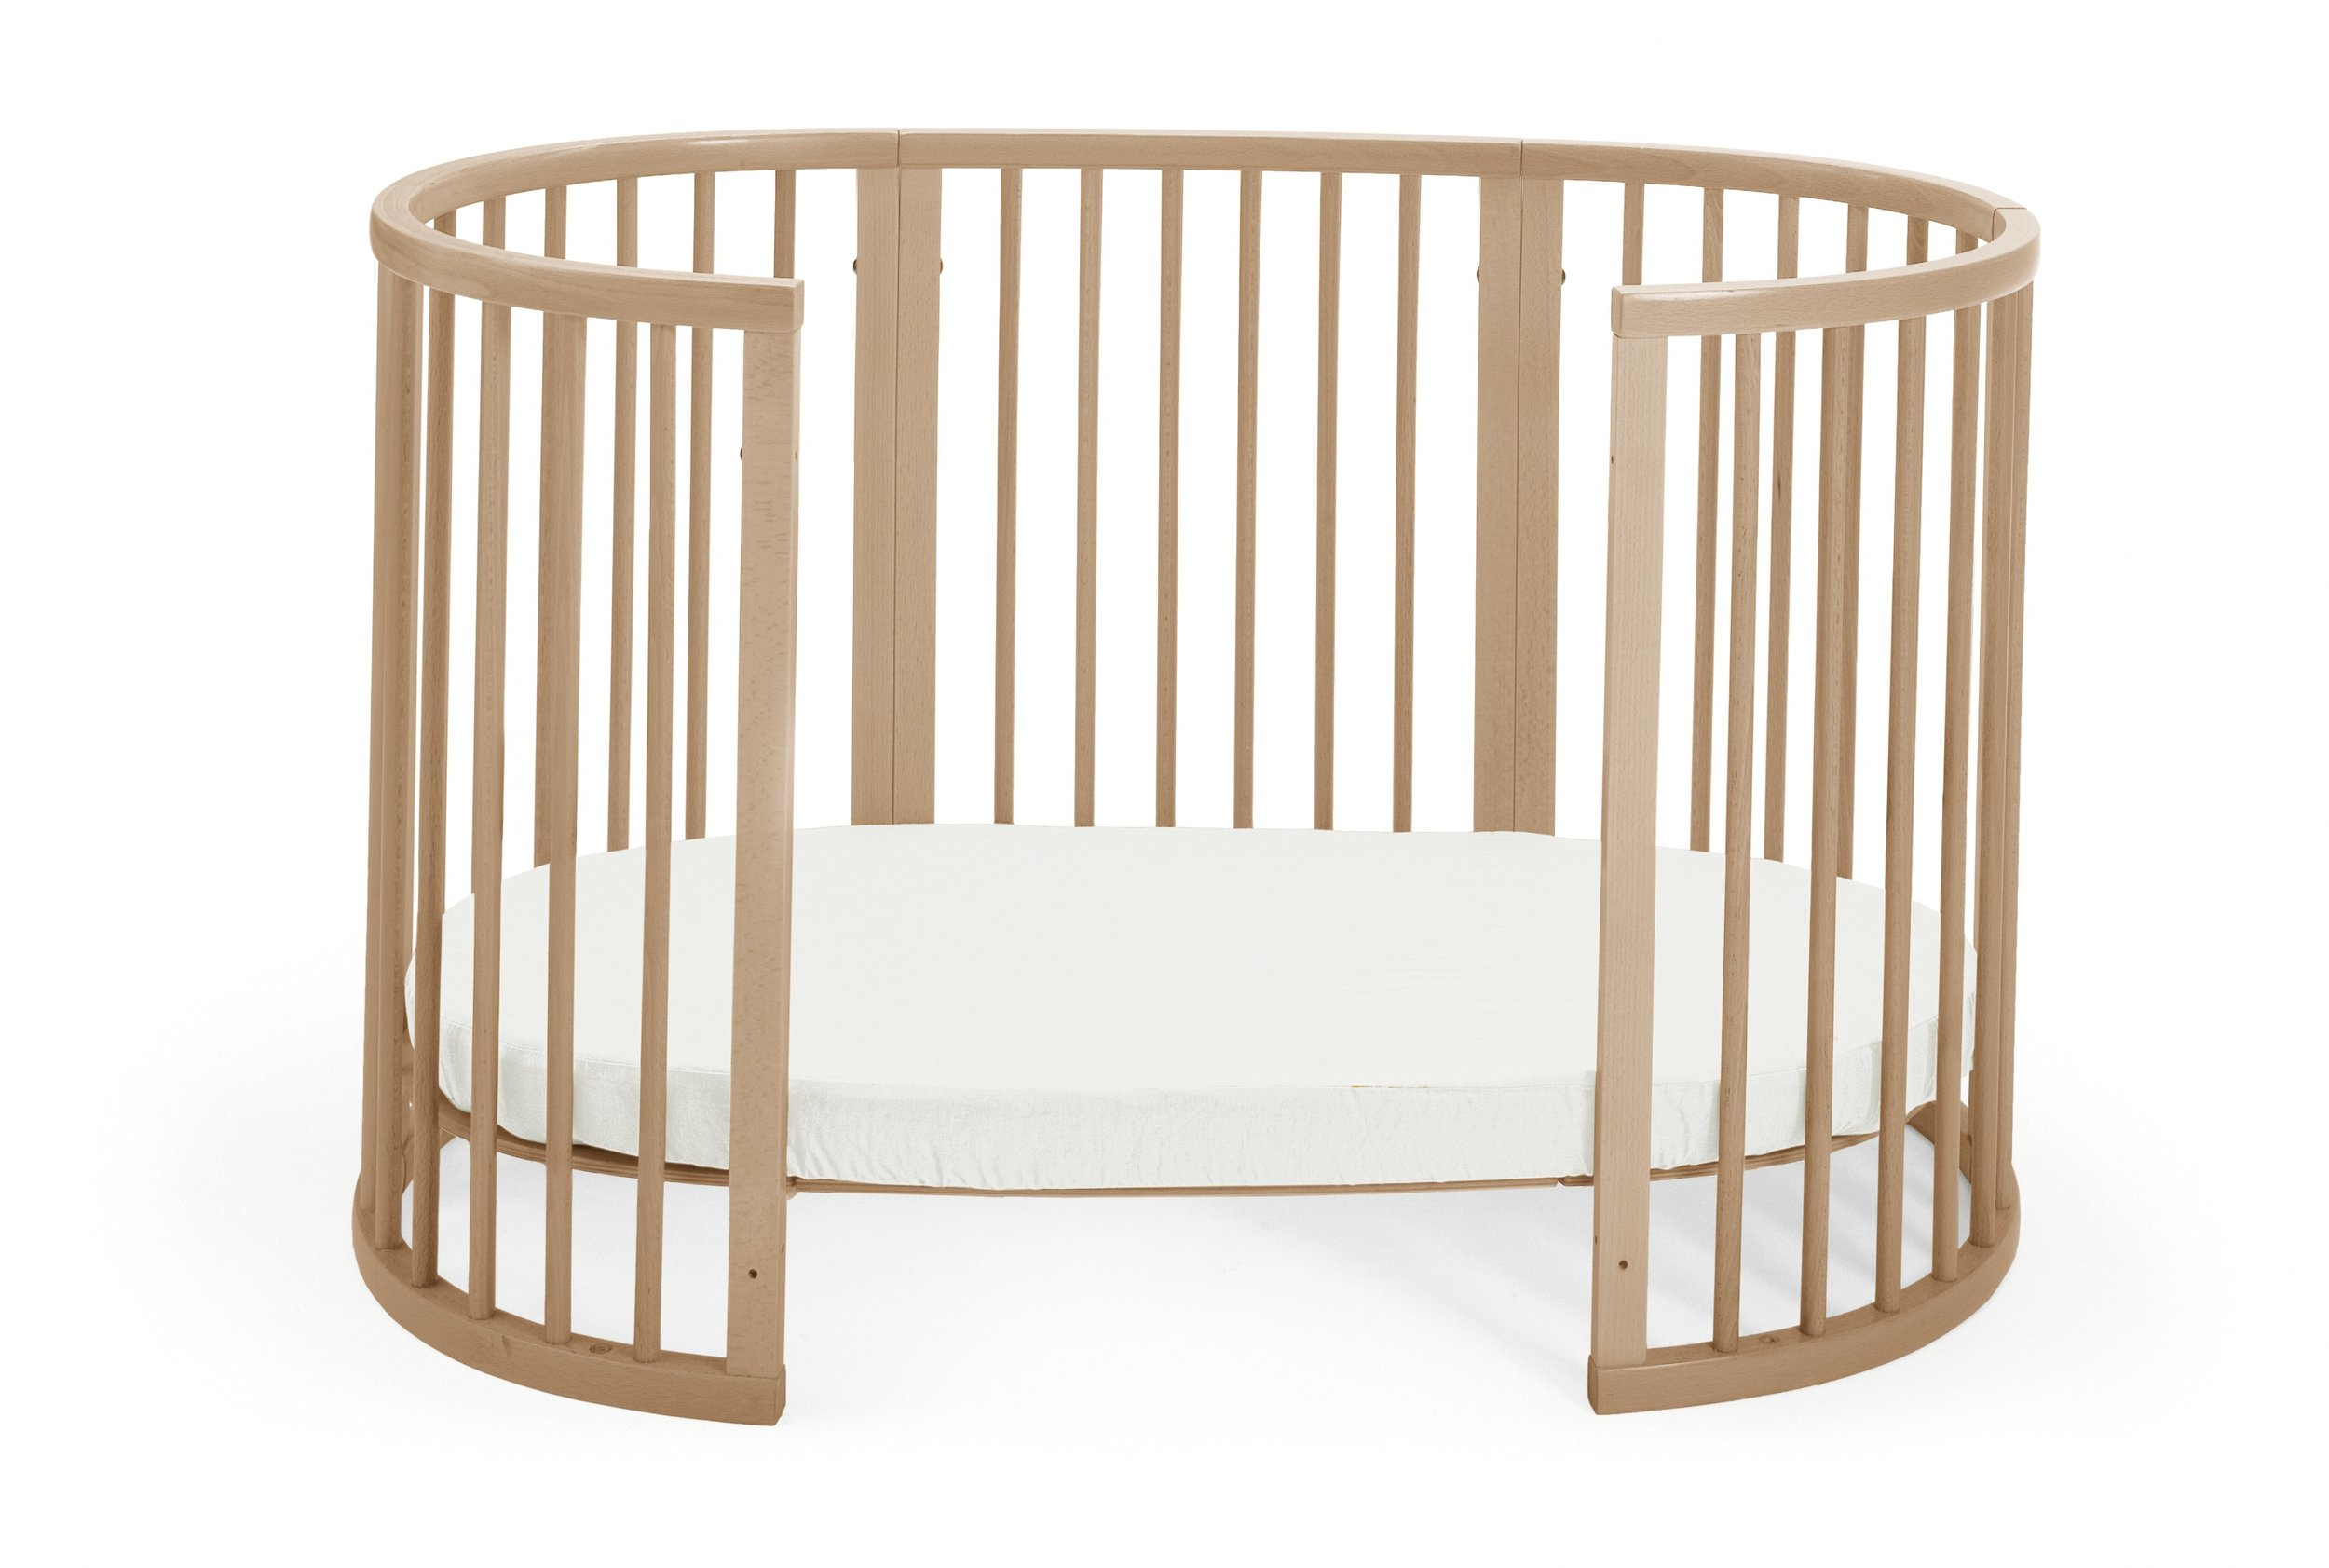 Stokke Sleepi Bed Natural_Open-MattressLow_181112-7537 press.jpg